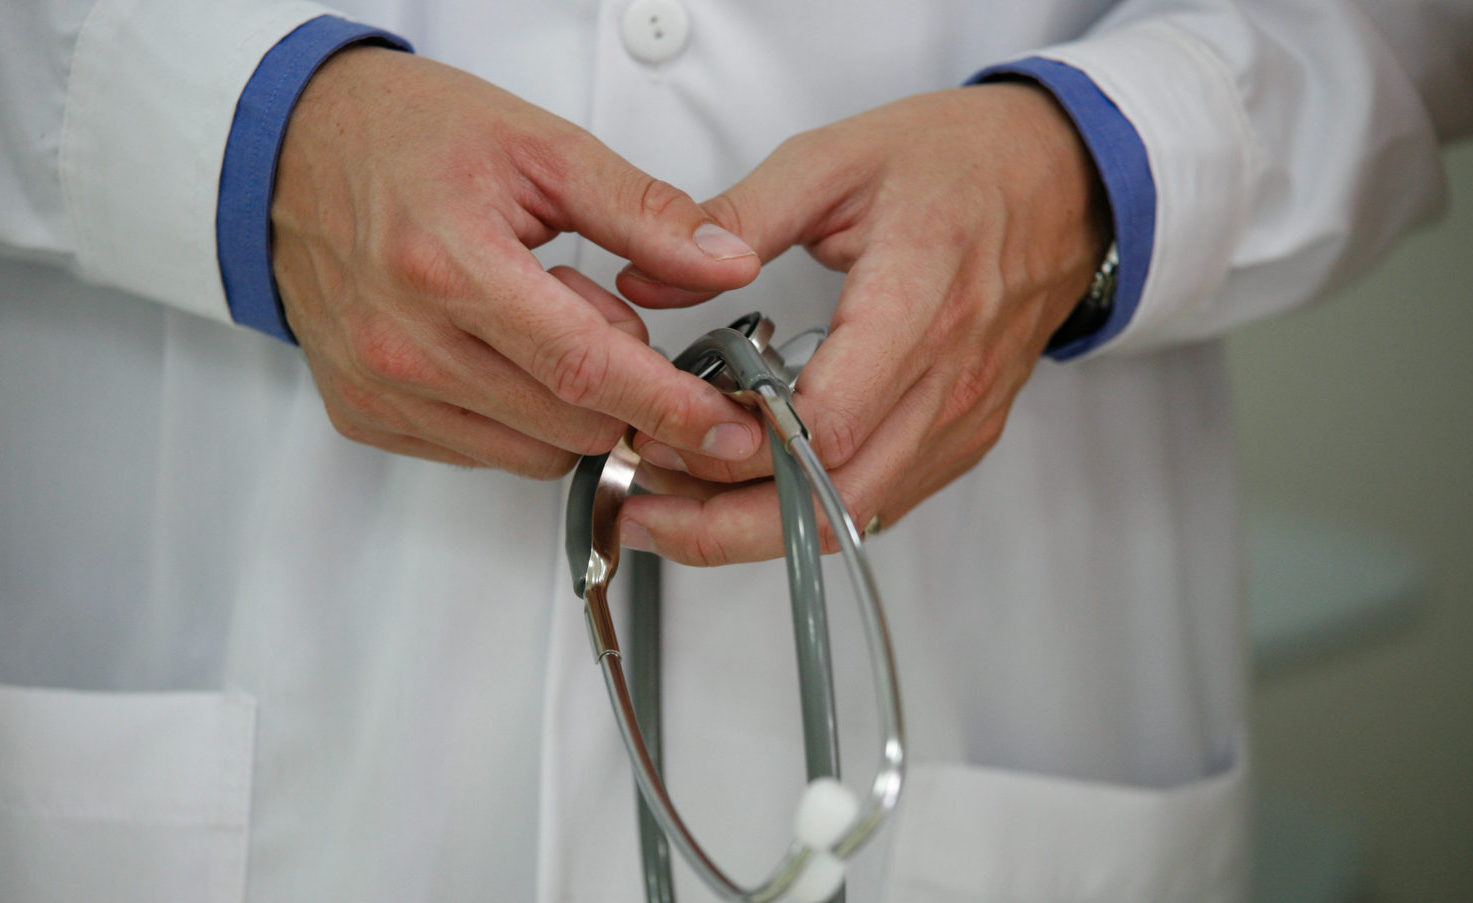 Close up of hands holding stethoscope: CC BY-NC 2.0